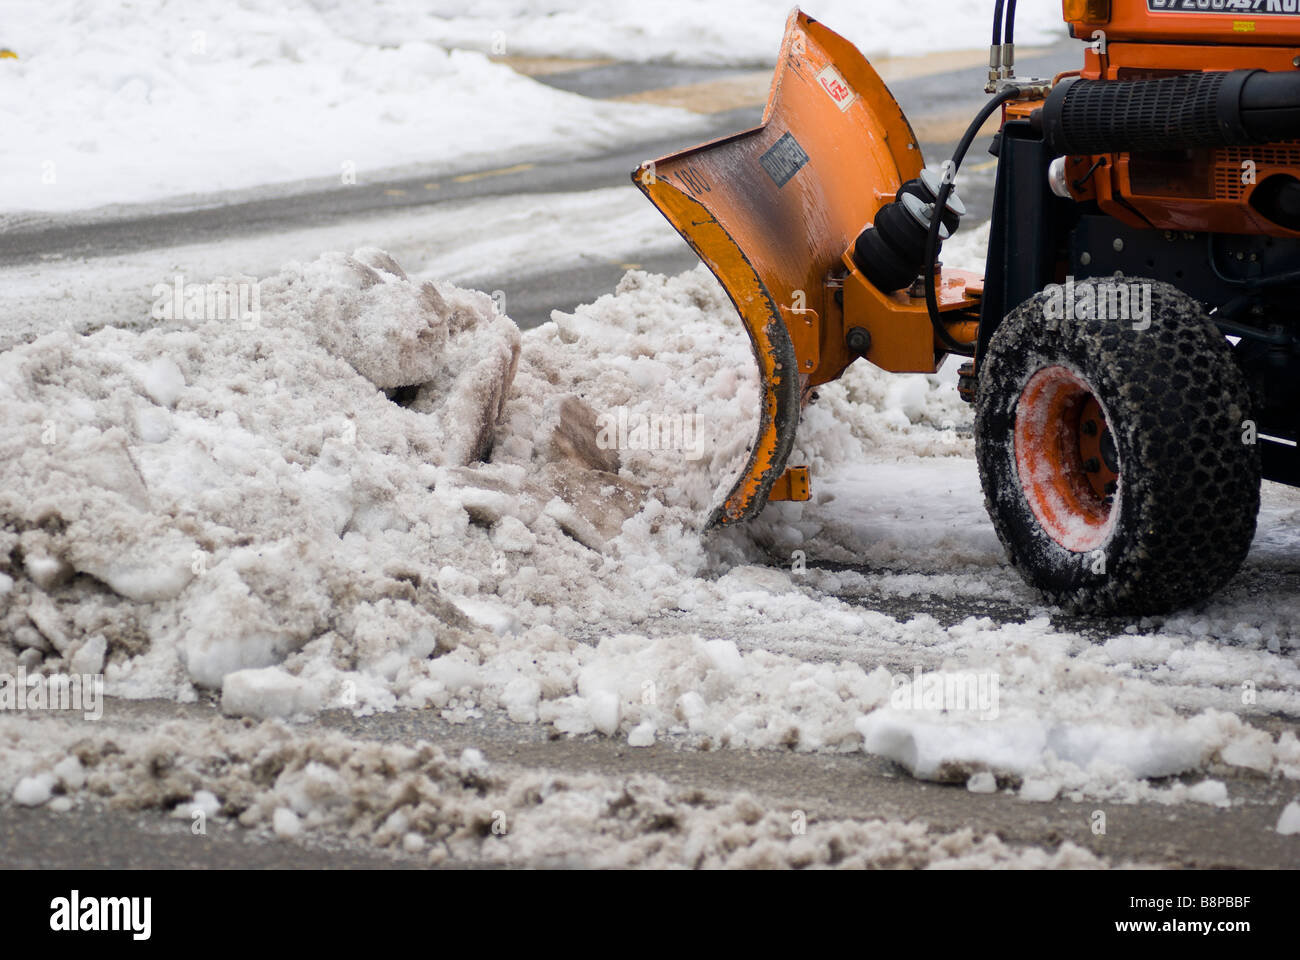 Snow plow clearing the streets after a heavy snow fall Neuchatel Switzerland - Stock Image